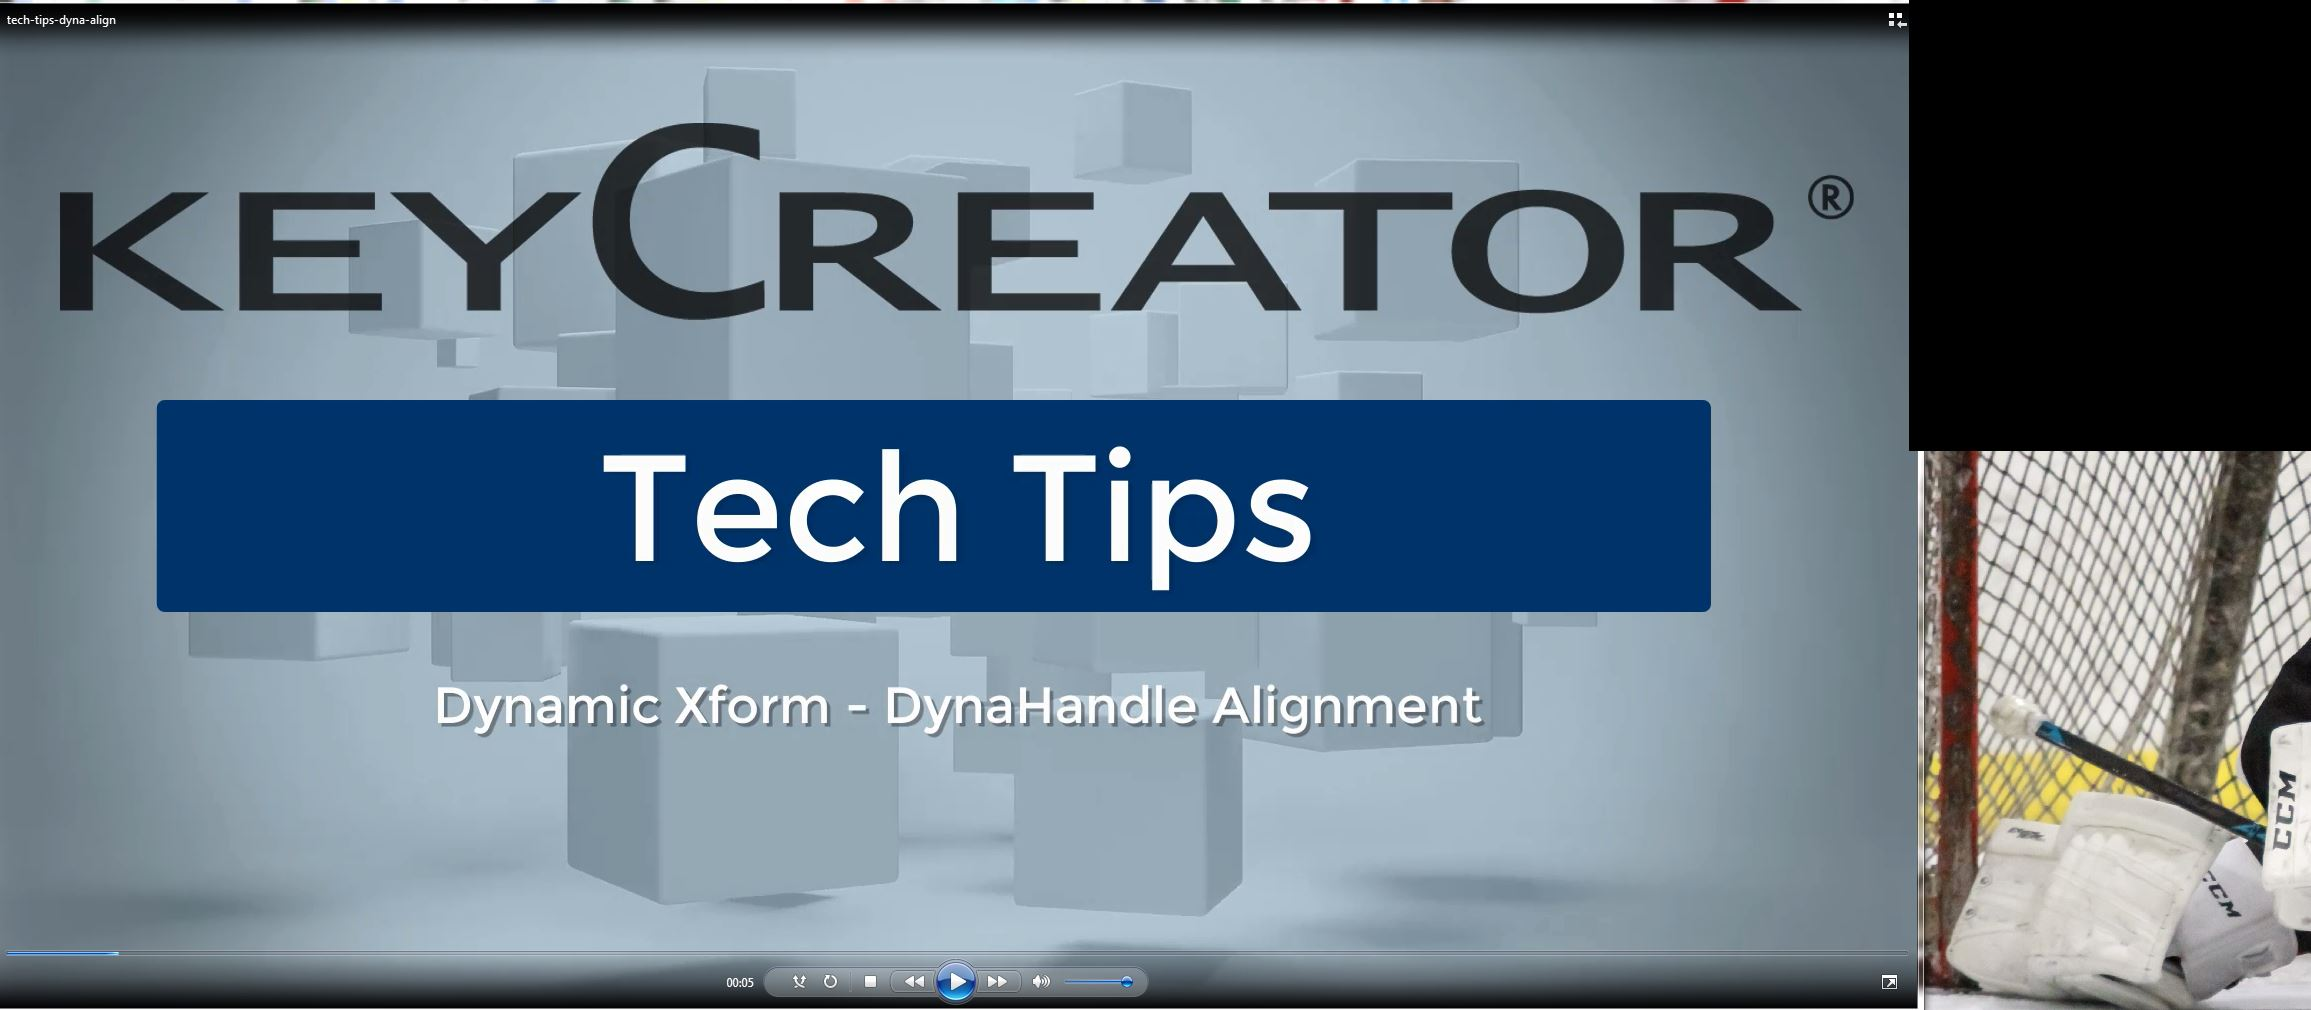 #TechTipTuesday-- Dynamic XForm - DynaHandle Alignment